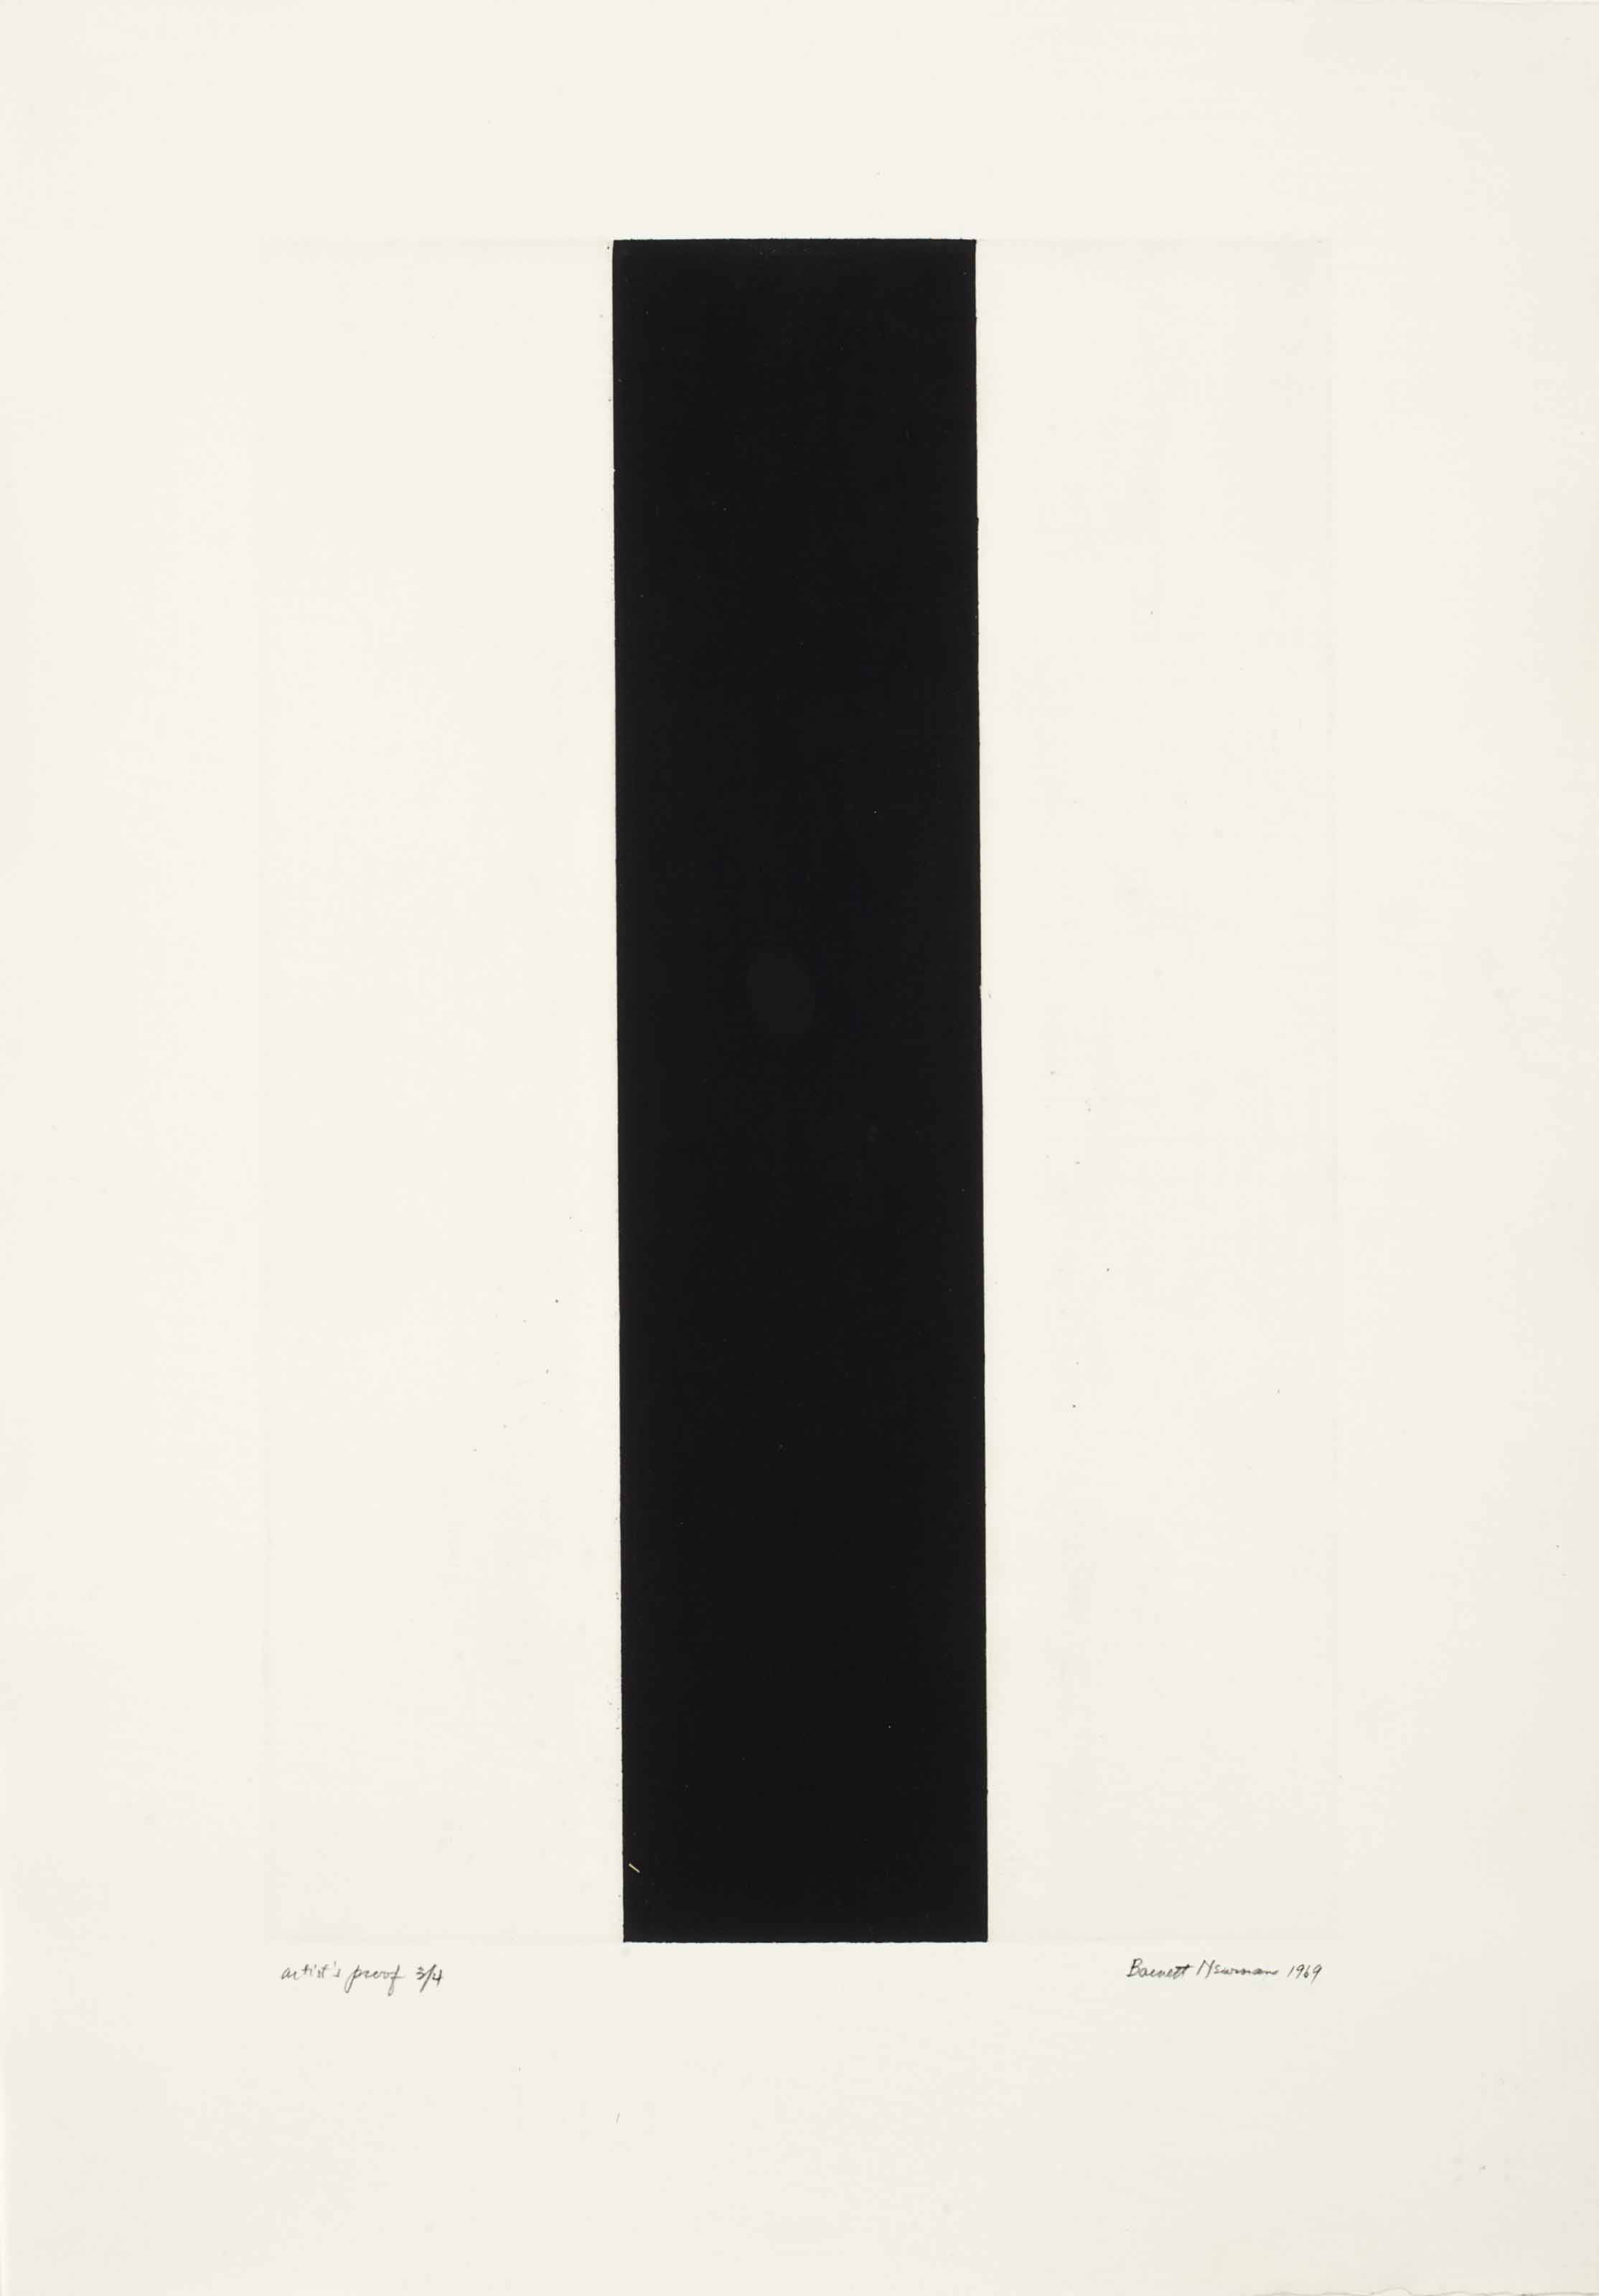 Untitled Etching 2 (The Barnett Newman Foundation 250; Sparks 41)